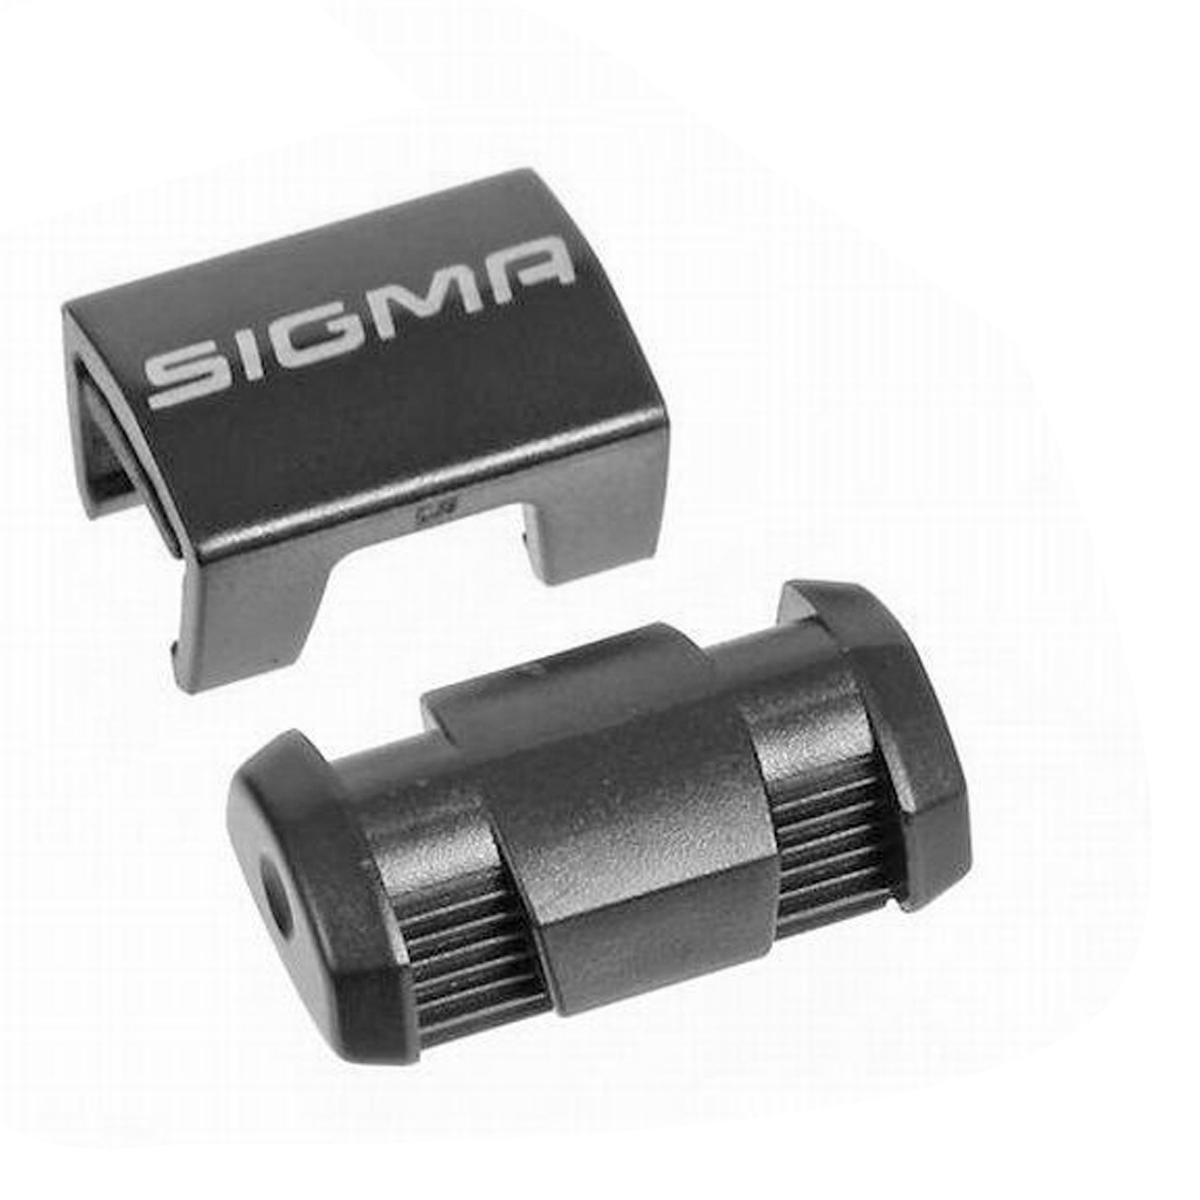 Aimant de compteur Sigma surpuissant pour rayon plat